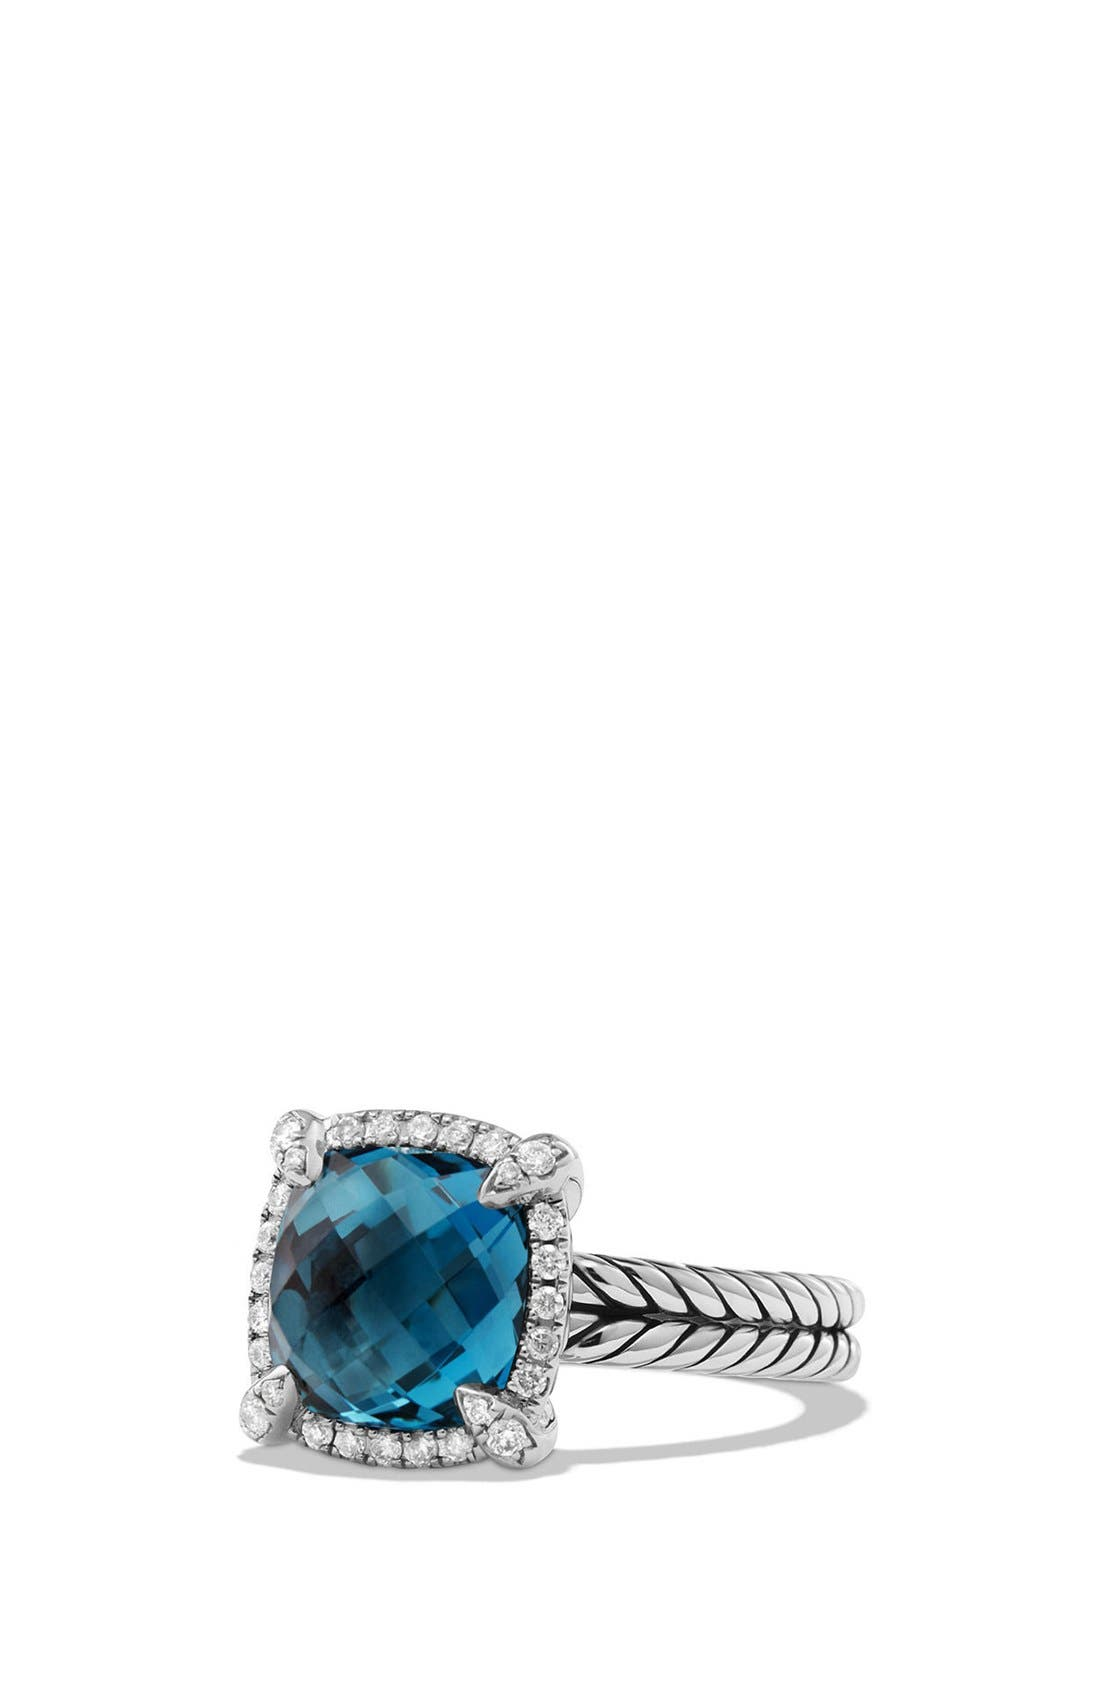 'Châtelaine' Small Pavé Bezel Ring with Diamonds,                             Main thumbnail 1, color,                             Blue Topaz